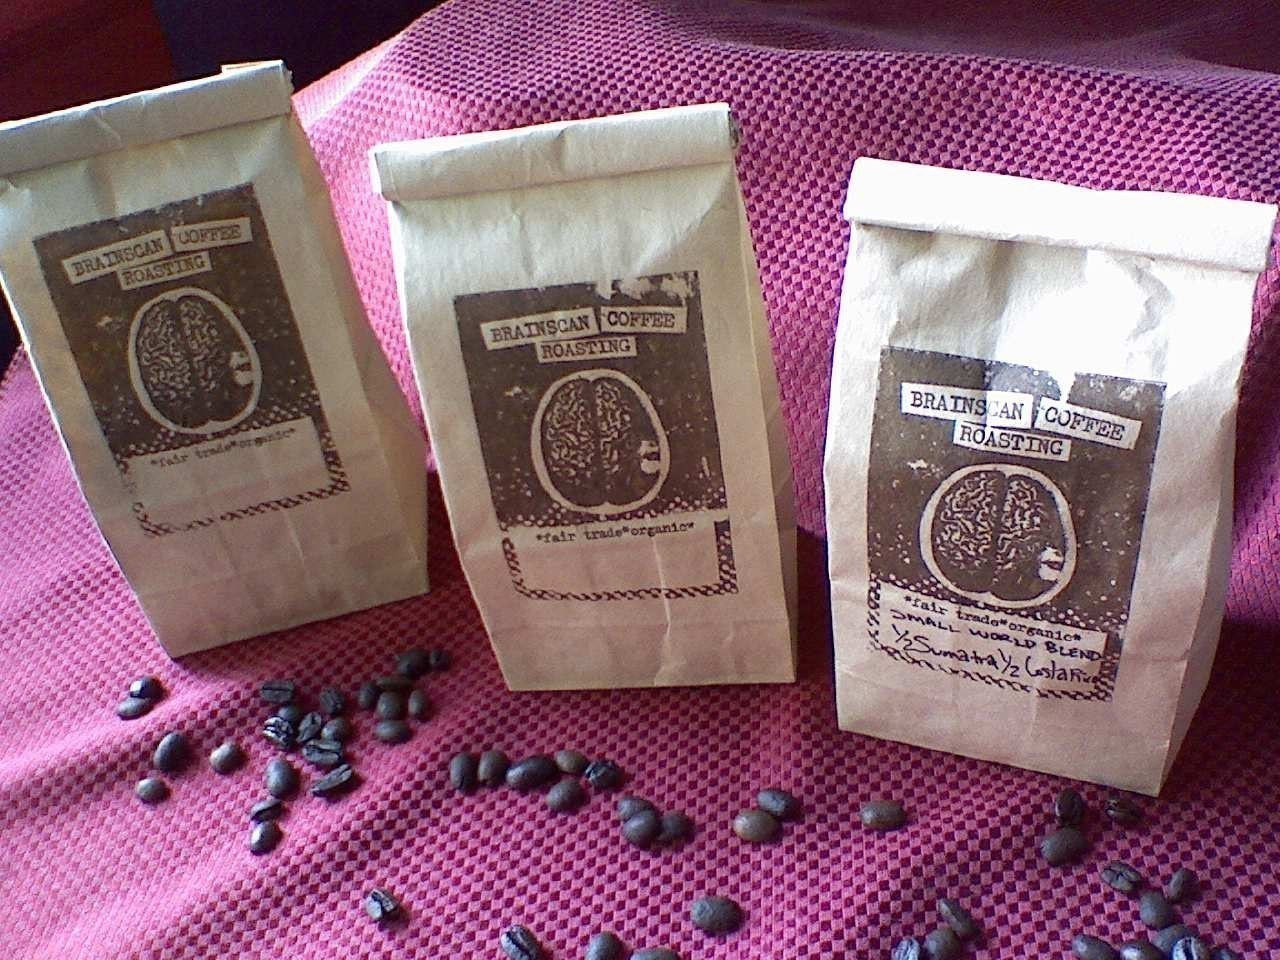 Brainscan Coffee 3 pack of 8 OZ bags YOU PICKTHE COMBO